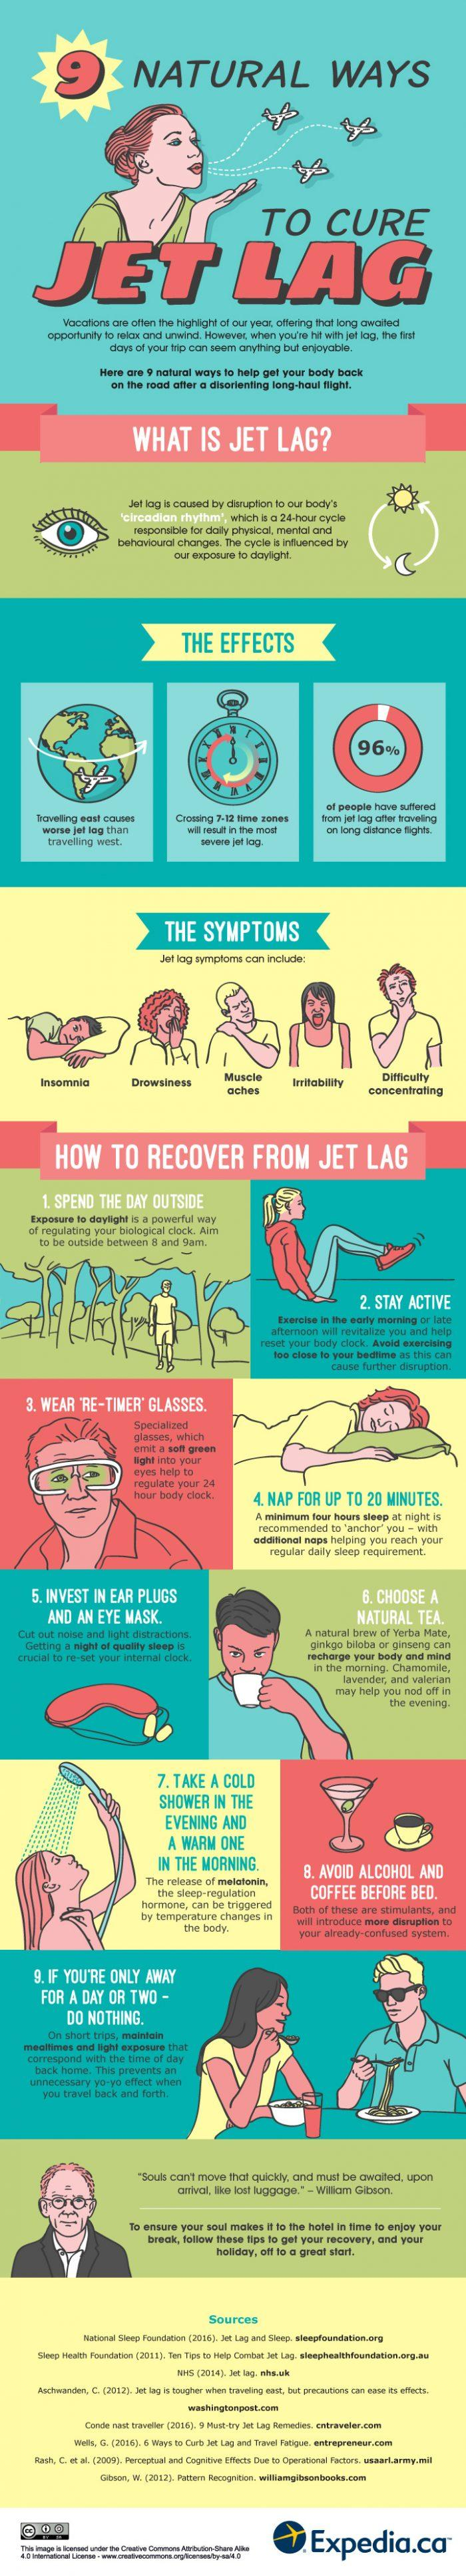 9-natural-ways-to-cure-jet-lag